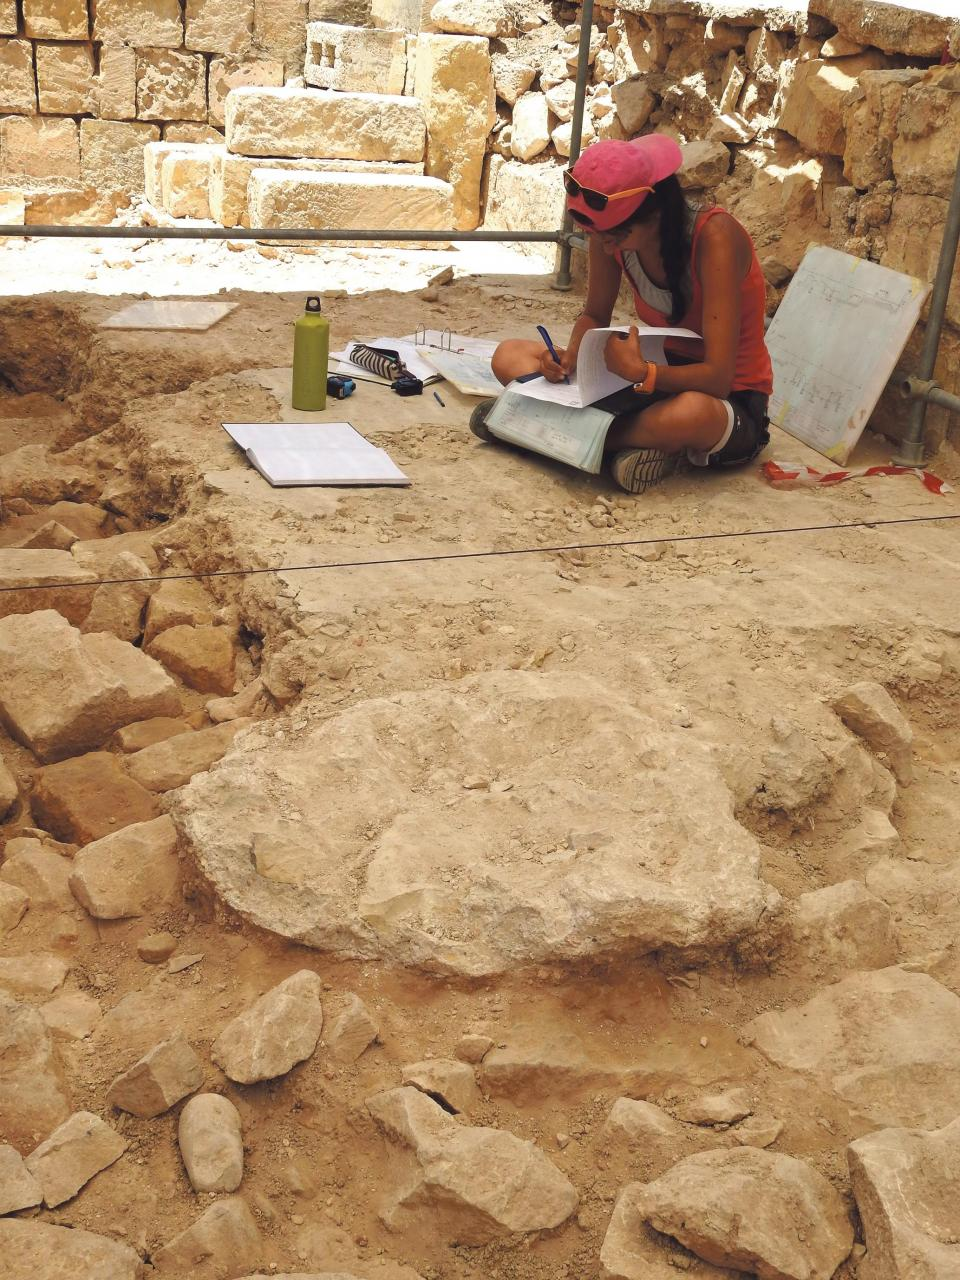 Finds of the latest excavations being documented.